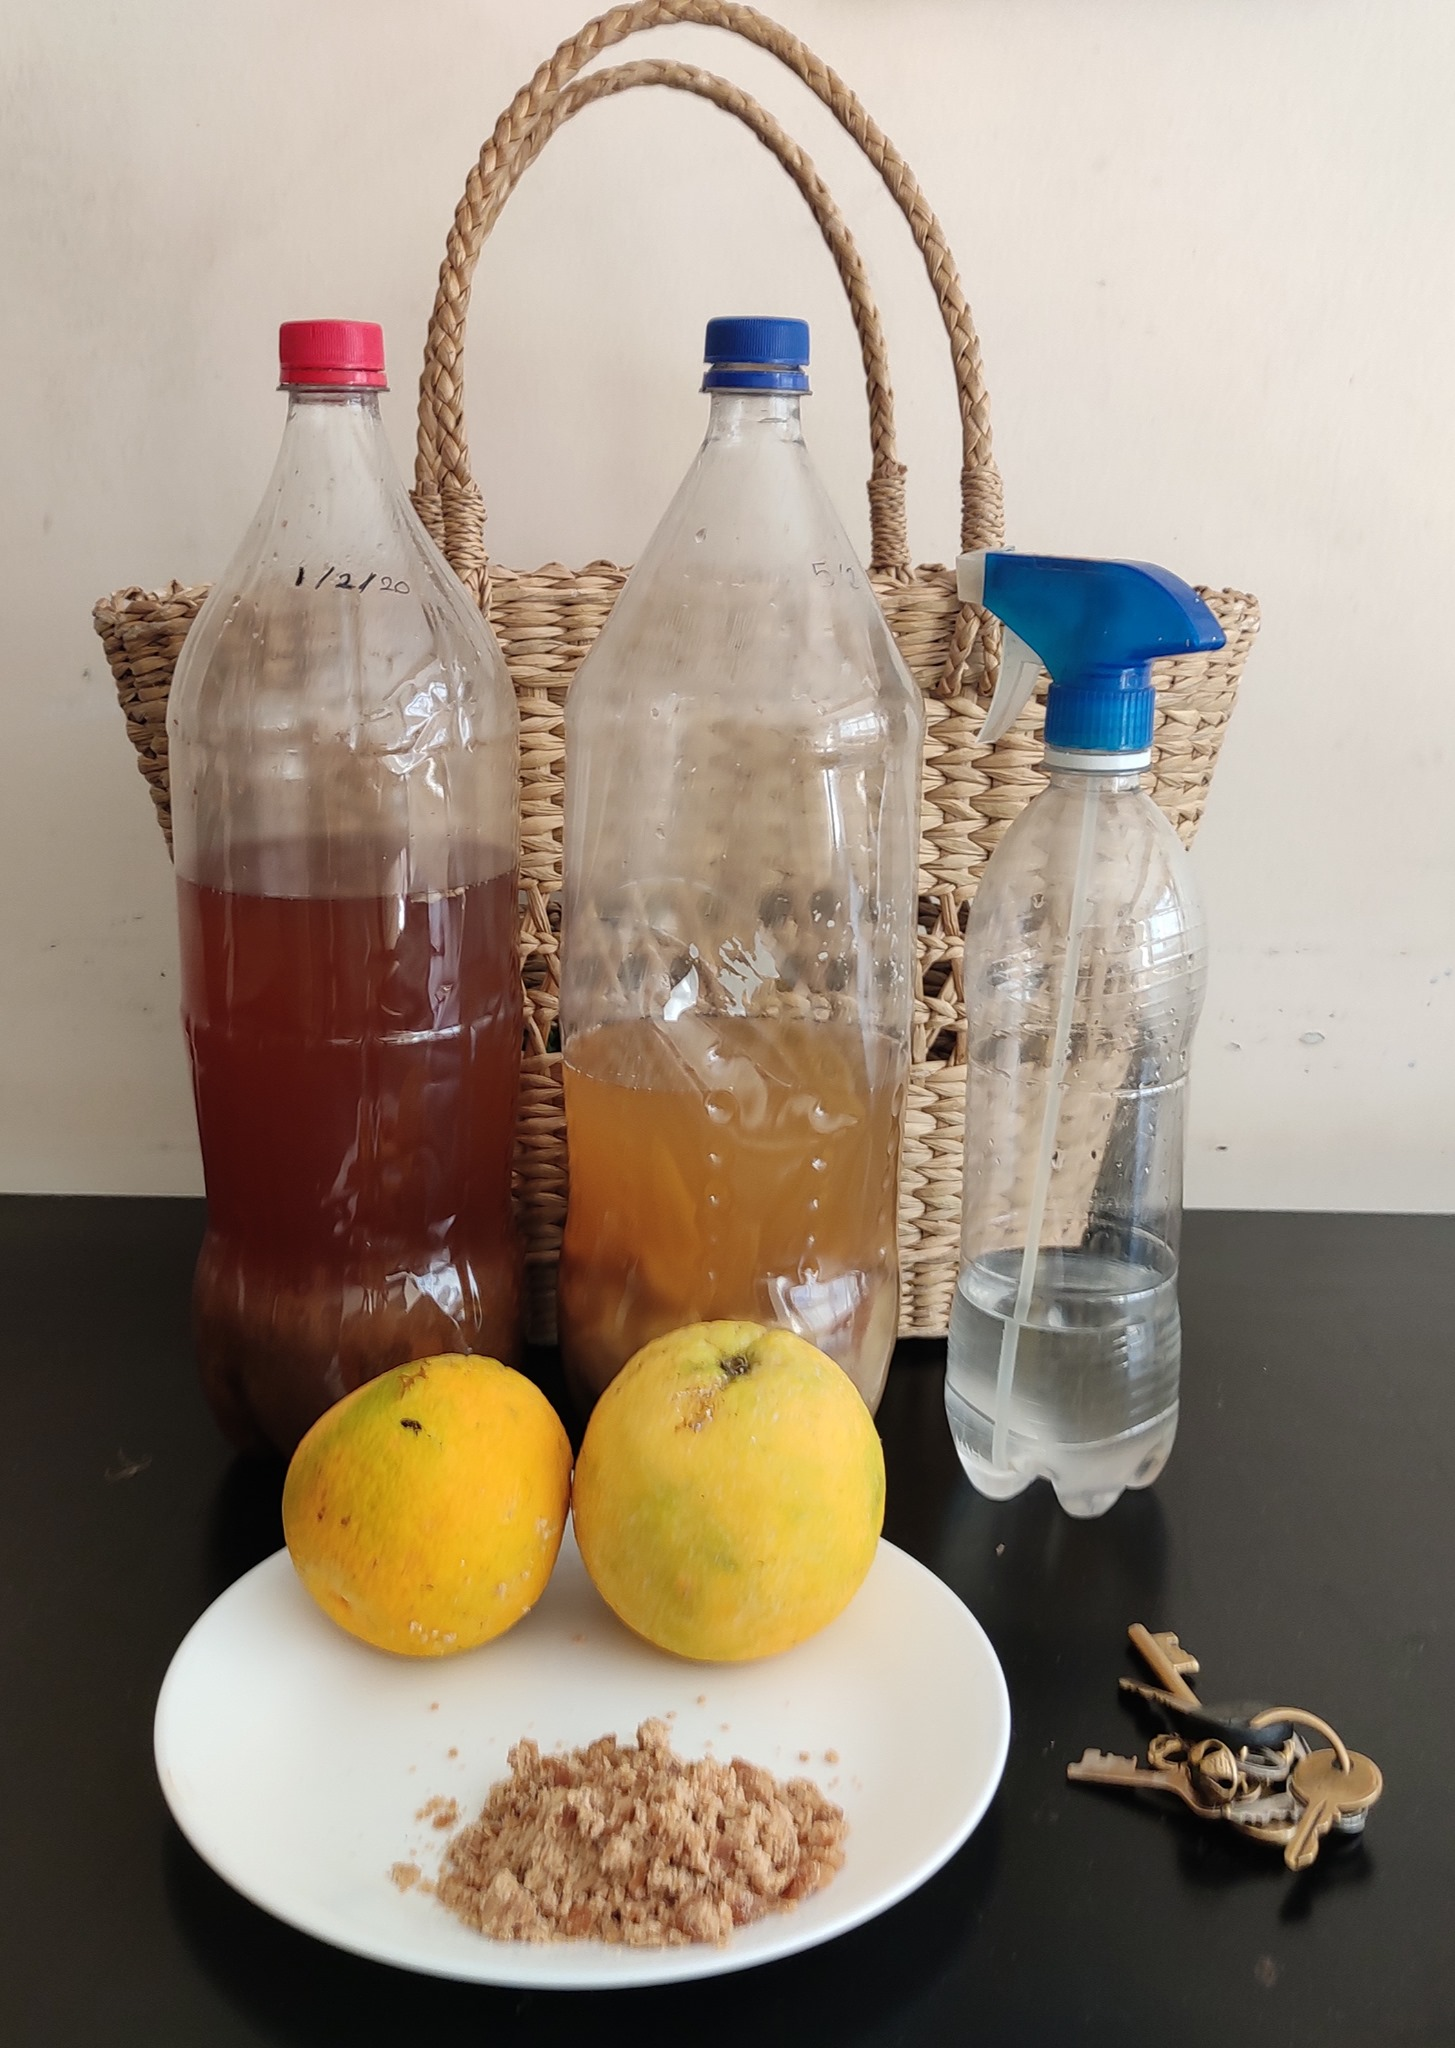 "<span class=""hpt_headertitle"">How Kirti turned fruits and vegetables into cleaners</span>"